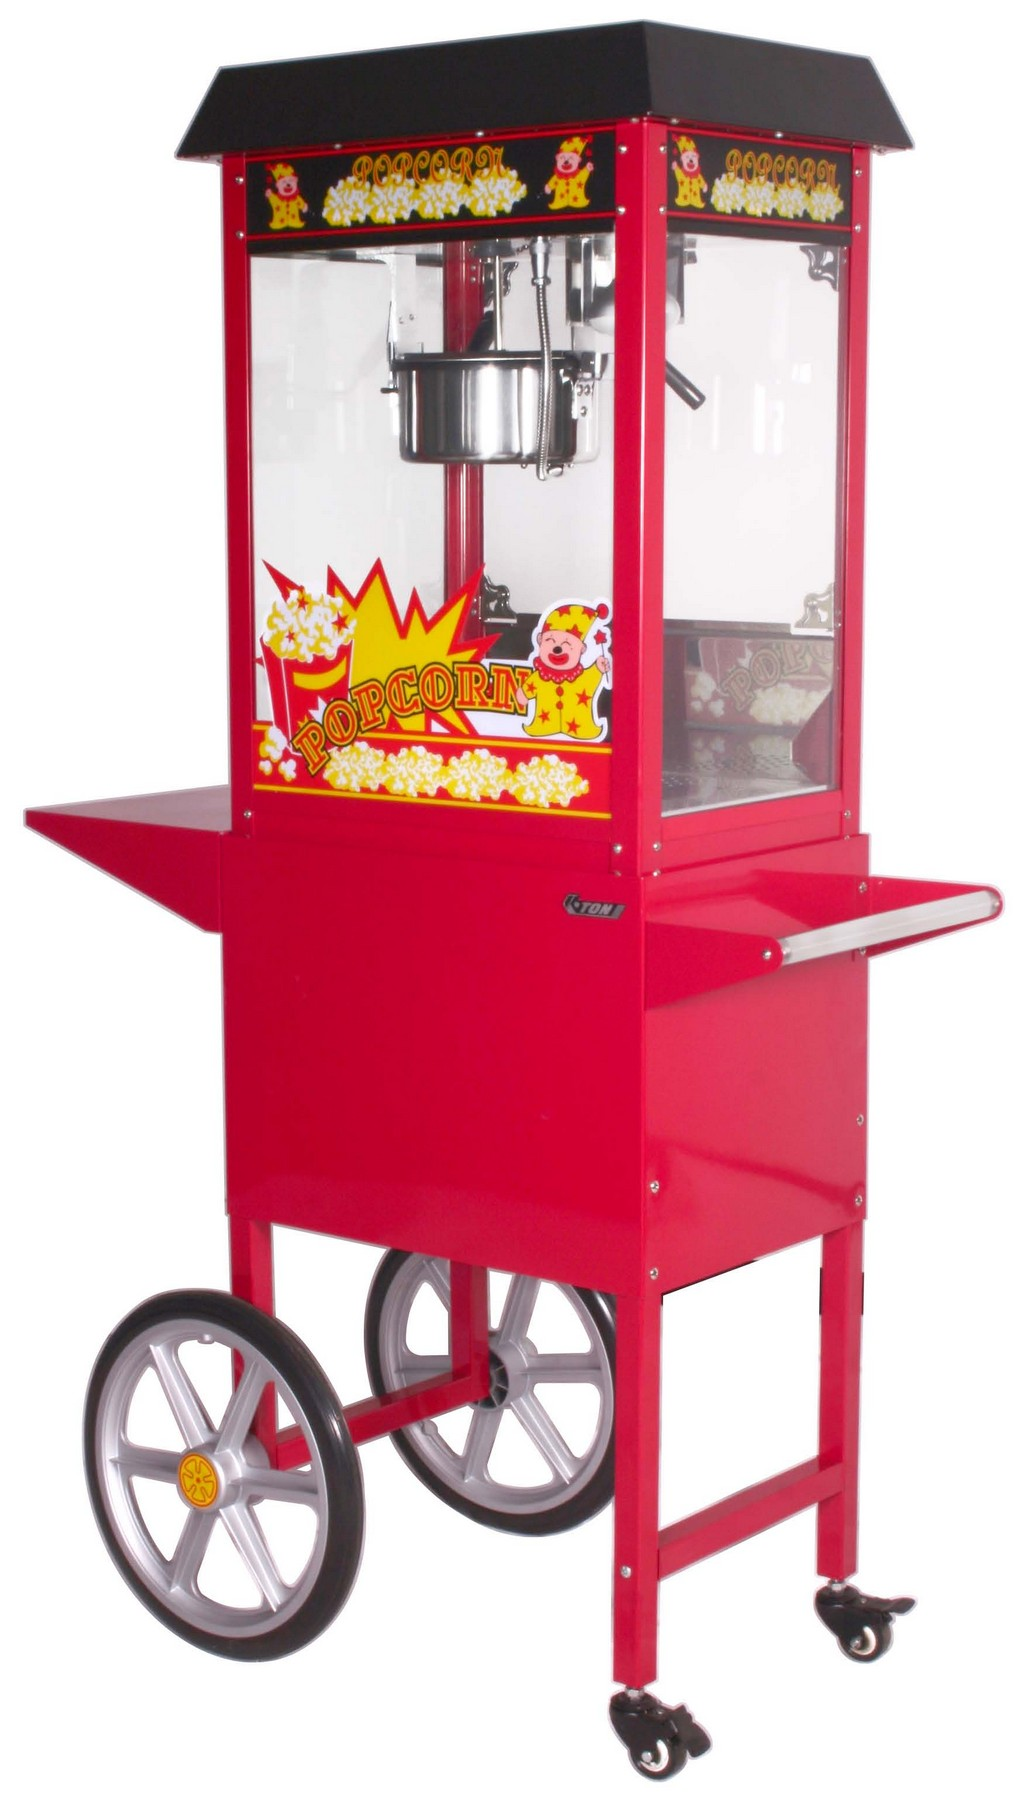 echols popcorn machine, popcorn machine cleaning, waring popcorn maker